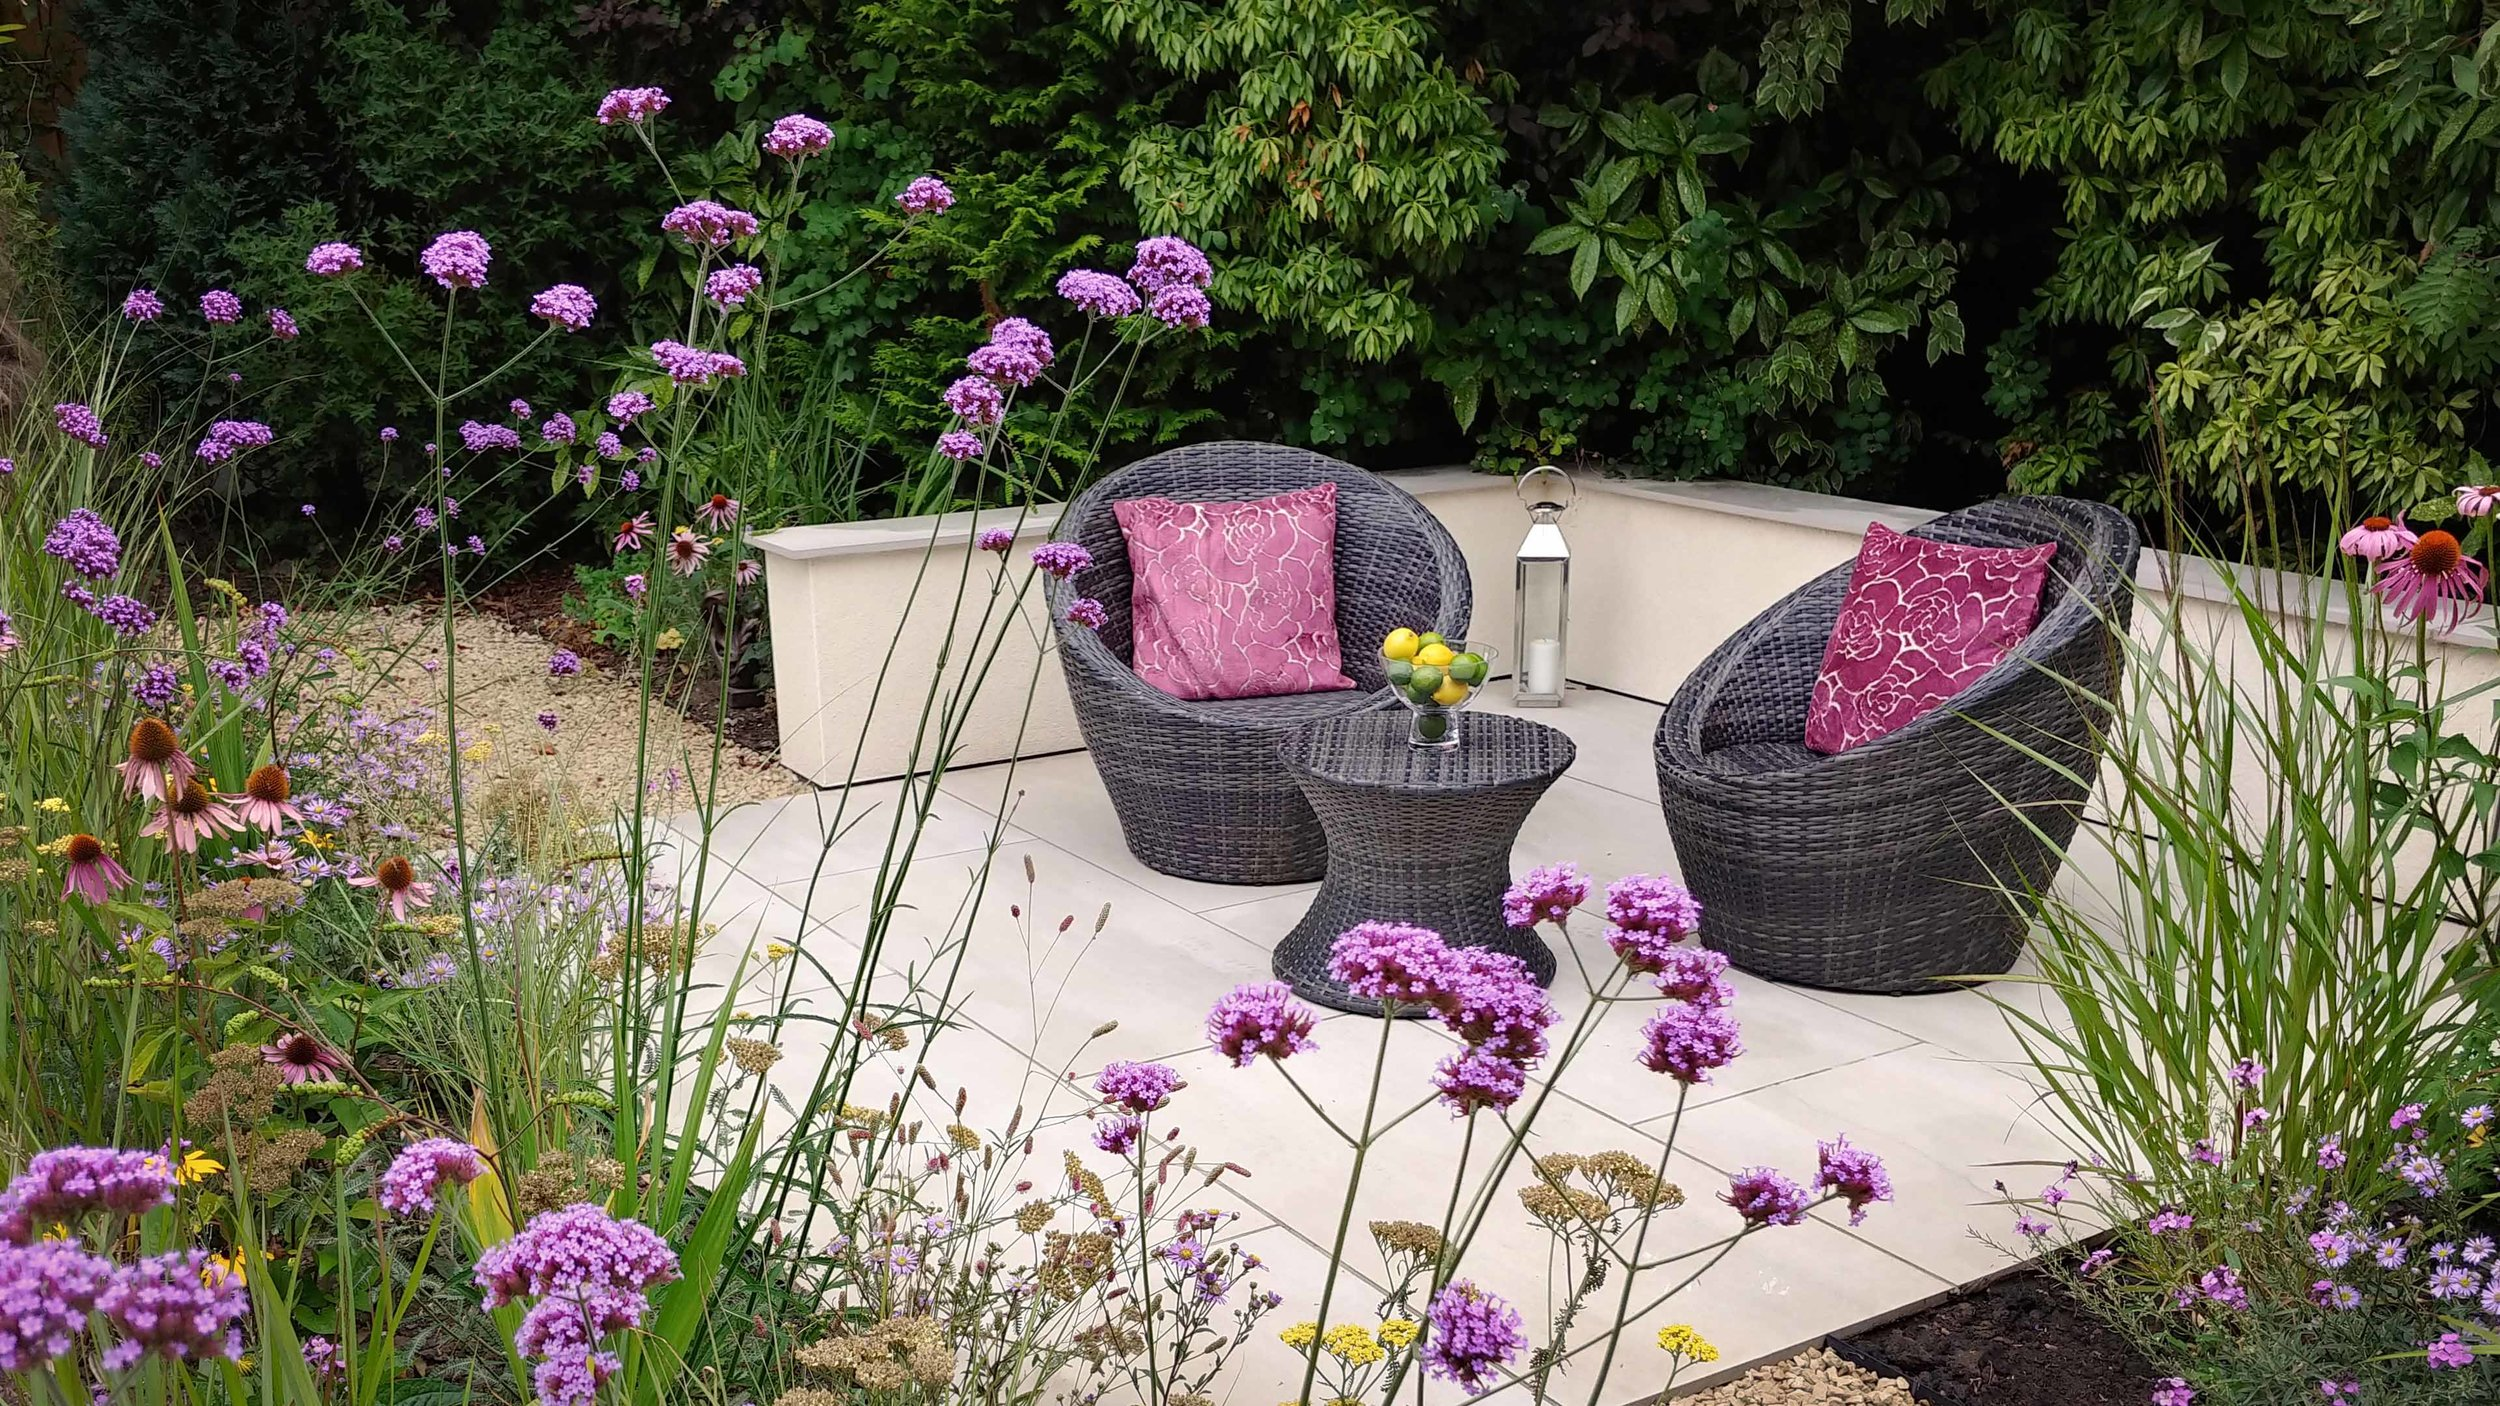 Garden Design Cheshire: Prairie Planting And Porcelain Patio: Seating Area